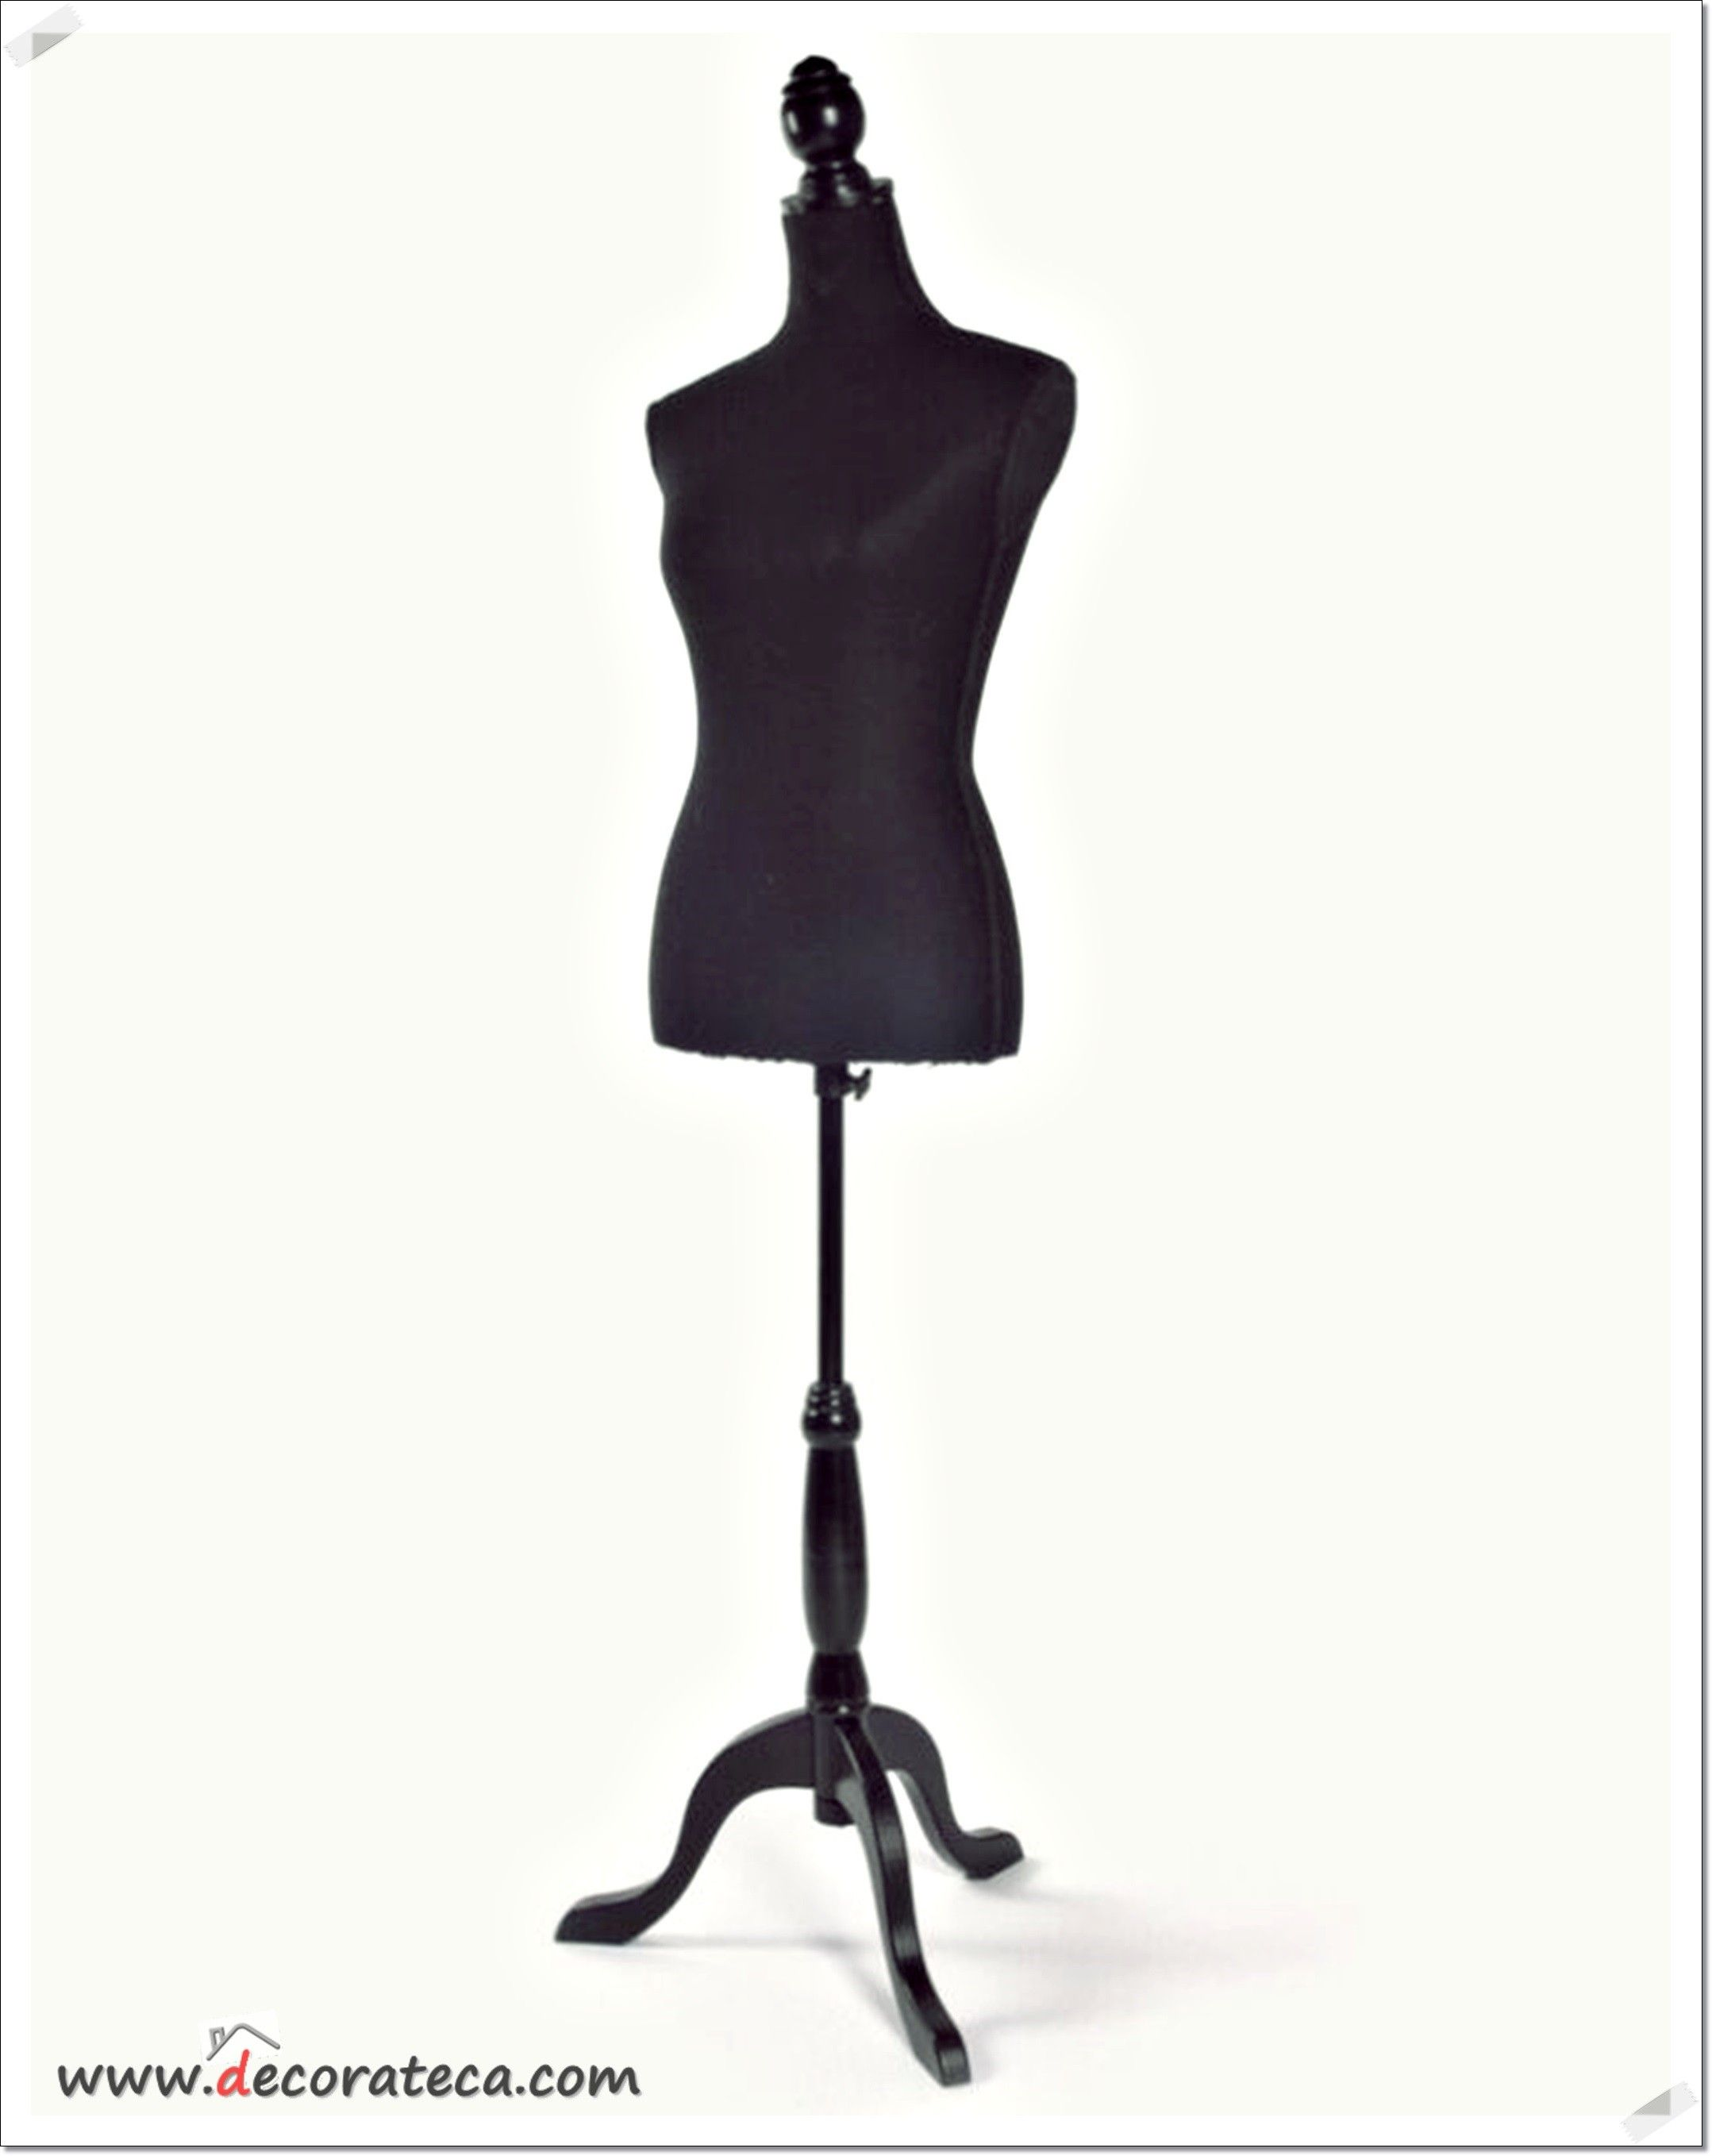 "Busto maniquí galán ""Couture negro"". Maniquíes decorativos de costura o modista - WWW.DECORATECA.COM"